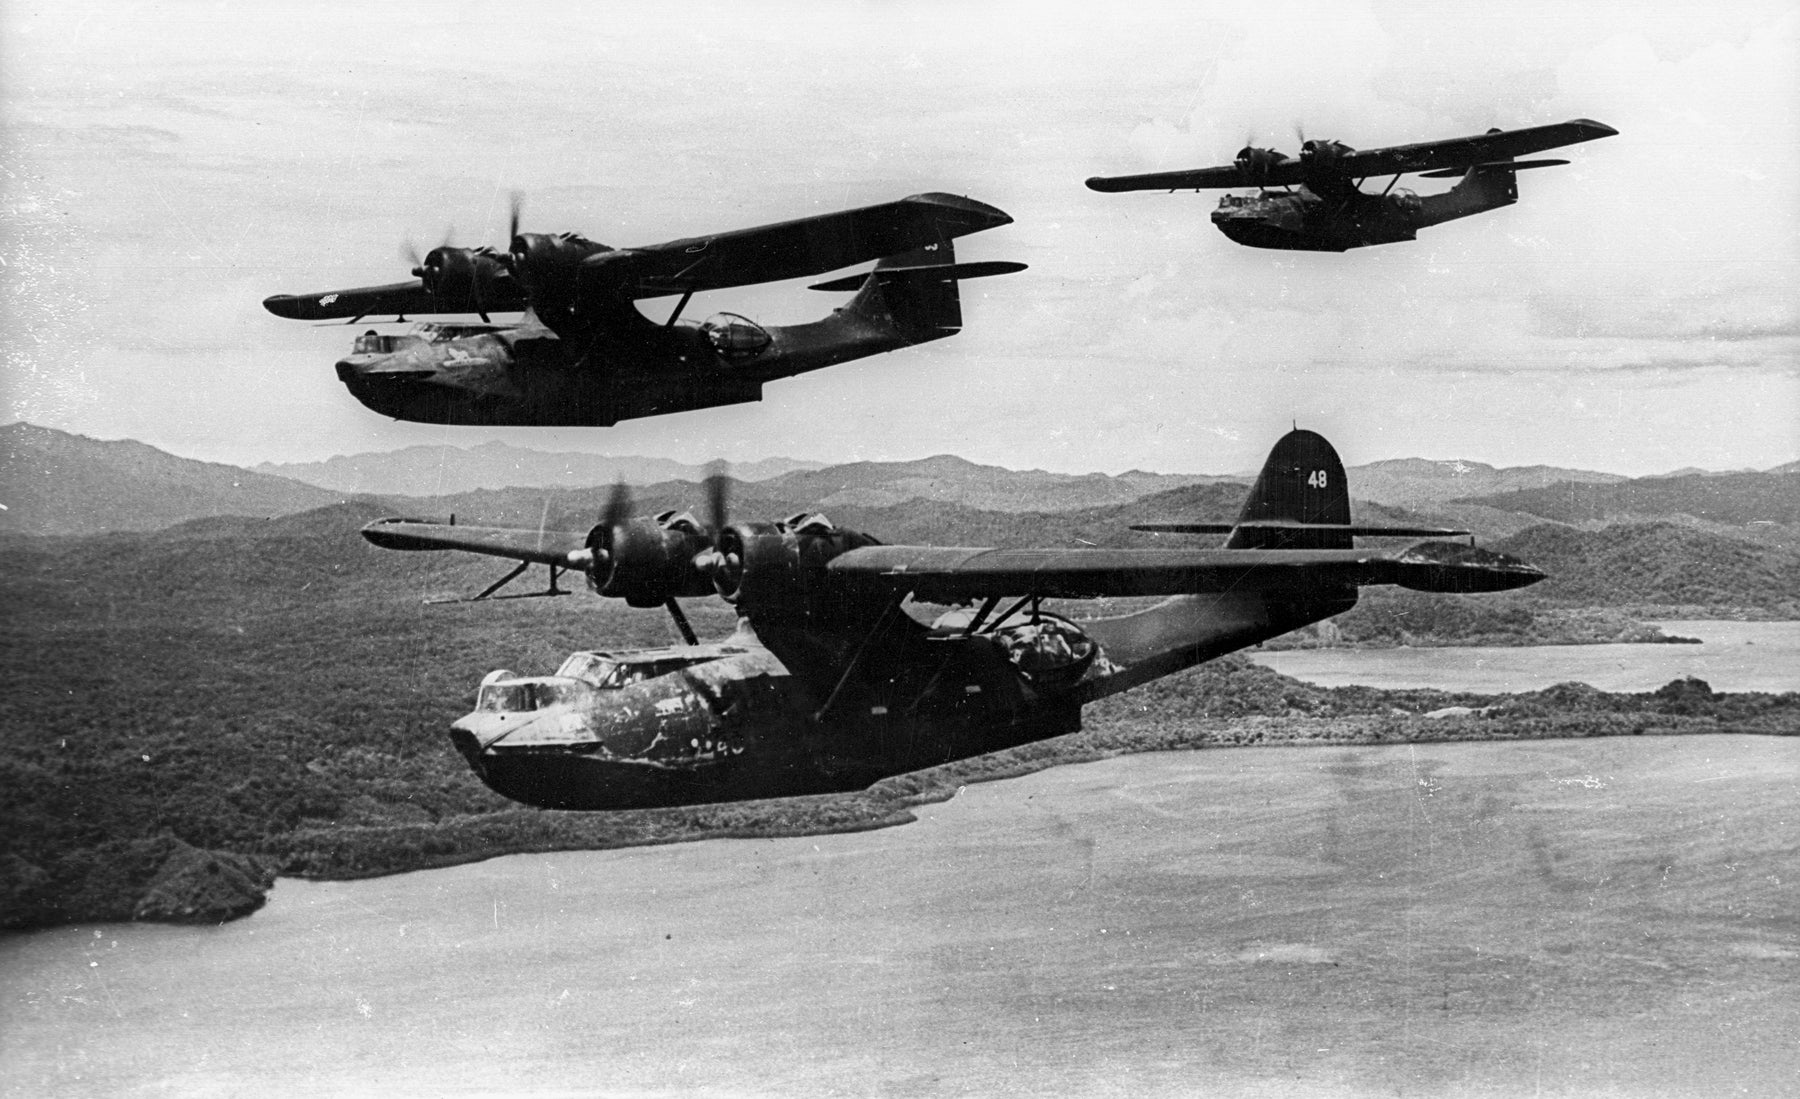 PBY 5As Aircraft, part of The Black Cats Missions